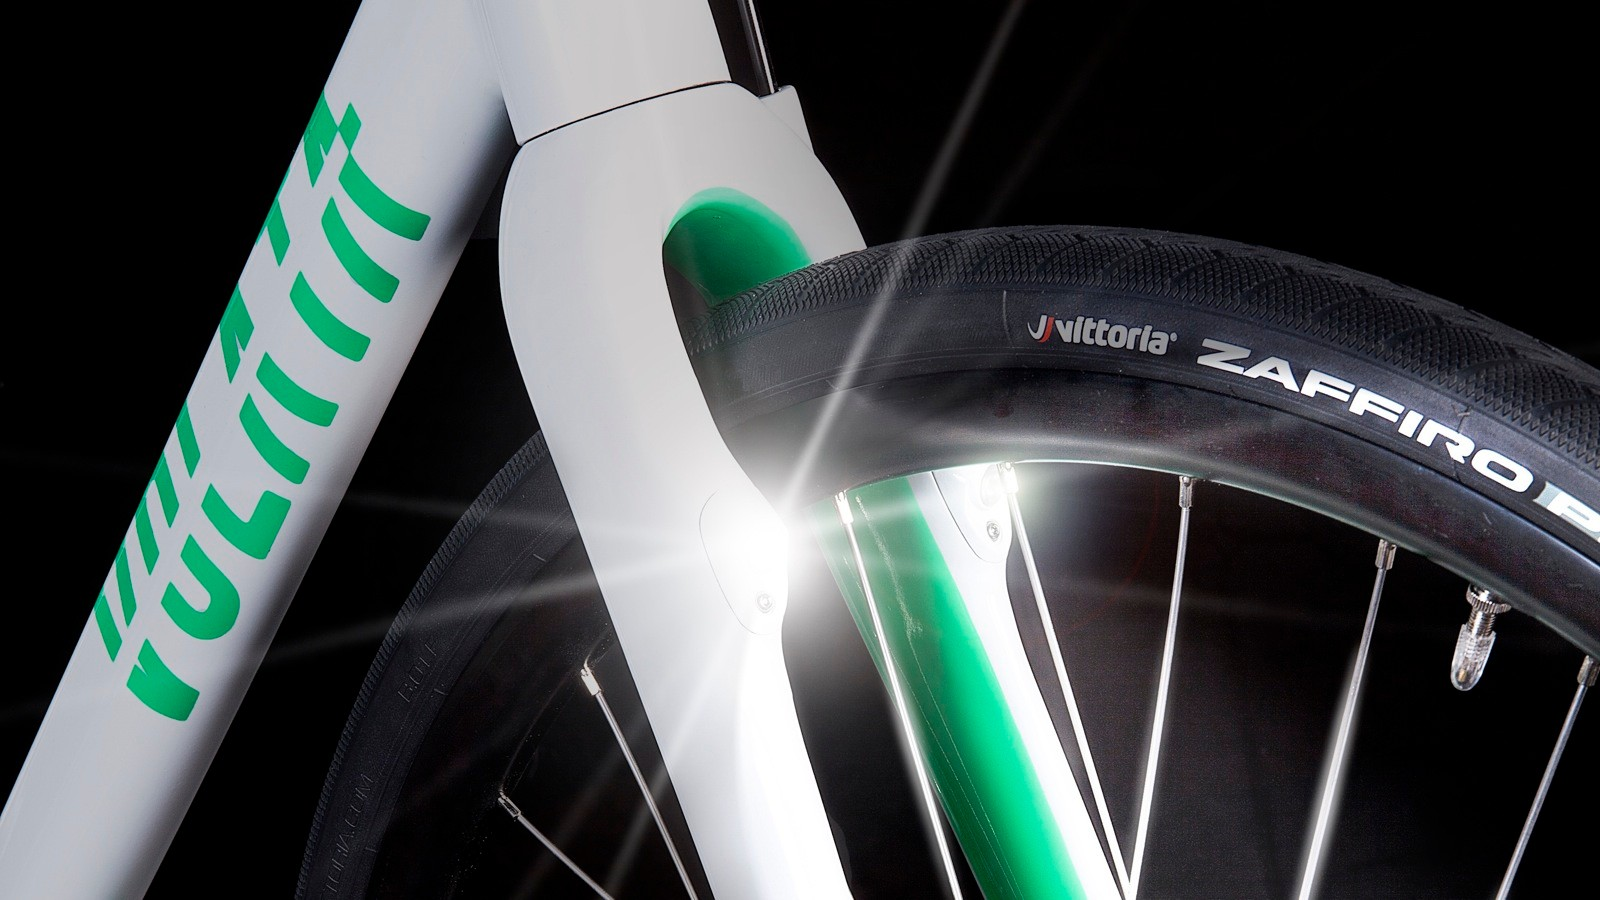 The integrated lights are powered by an internal battery that is charged by the front hub dynamo